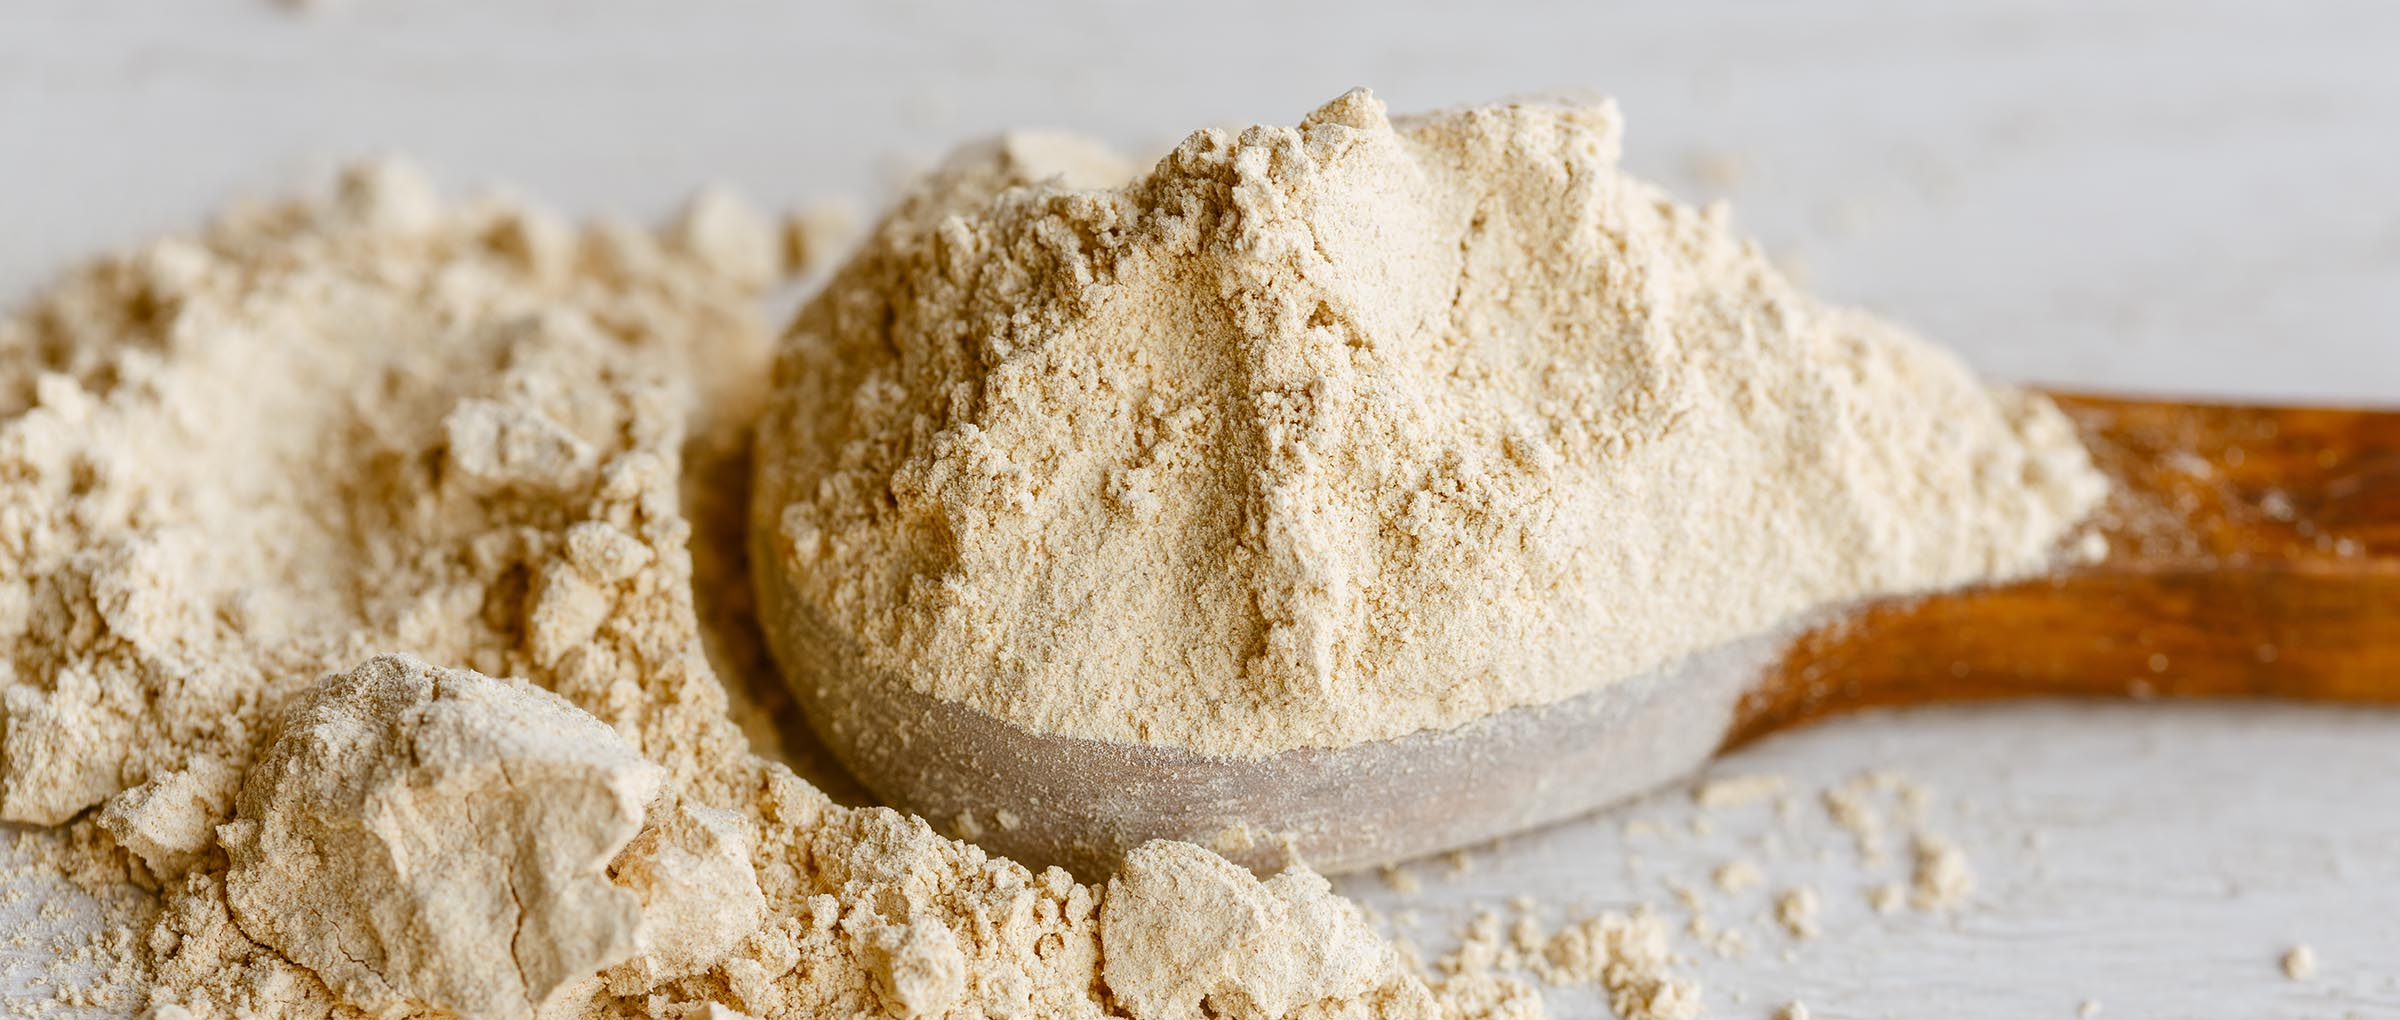 Benefits of maca root powder for low sperm count